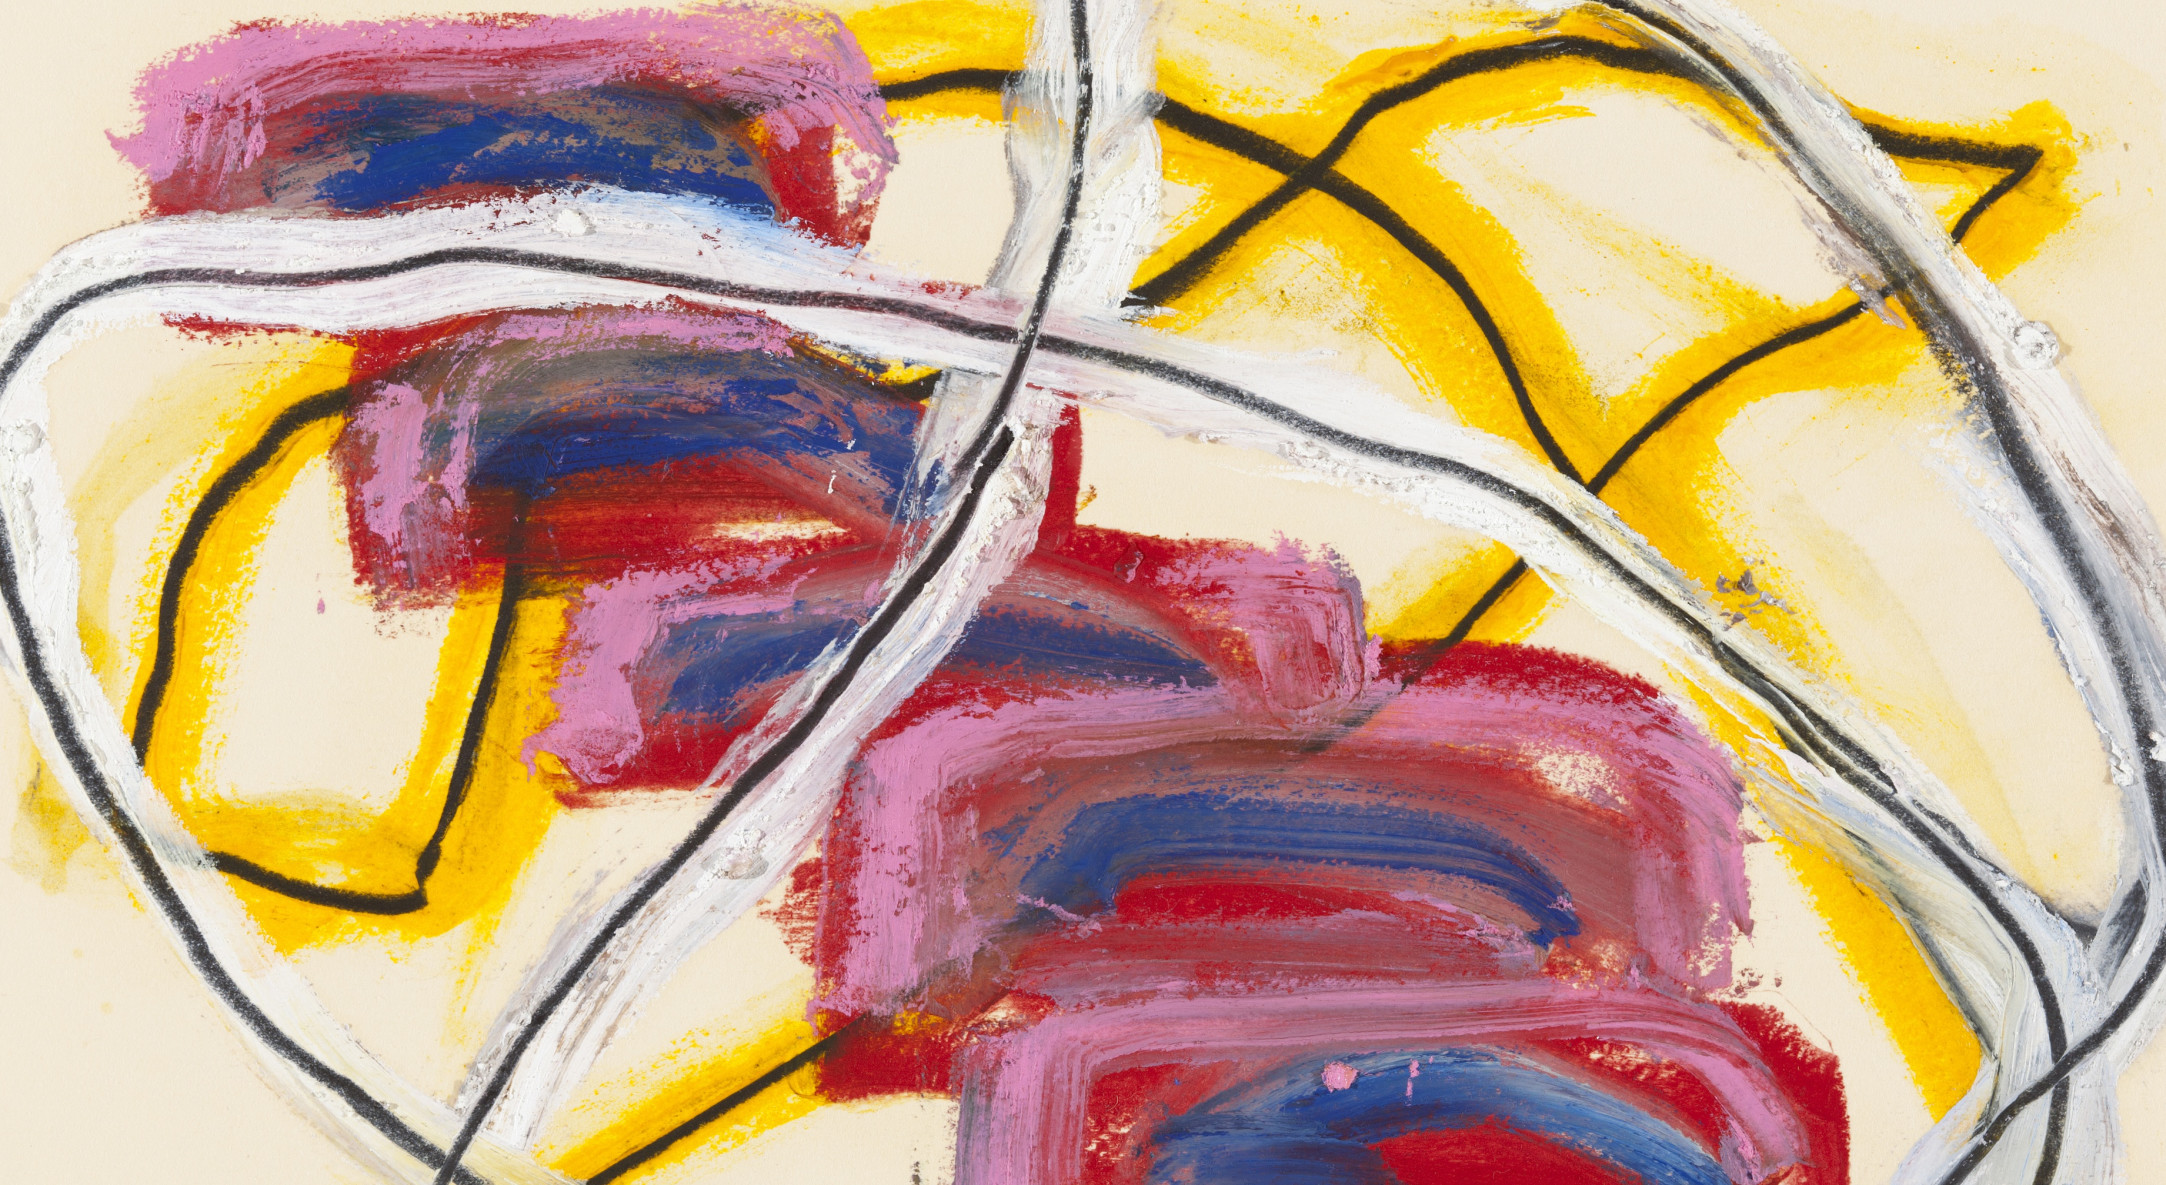 Detail of Basil Beattie Untitled, 2011, Mixed media on paper, 35.5 x 45.5 cm, 14 x 17 7/8 in